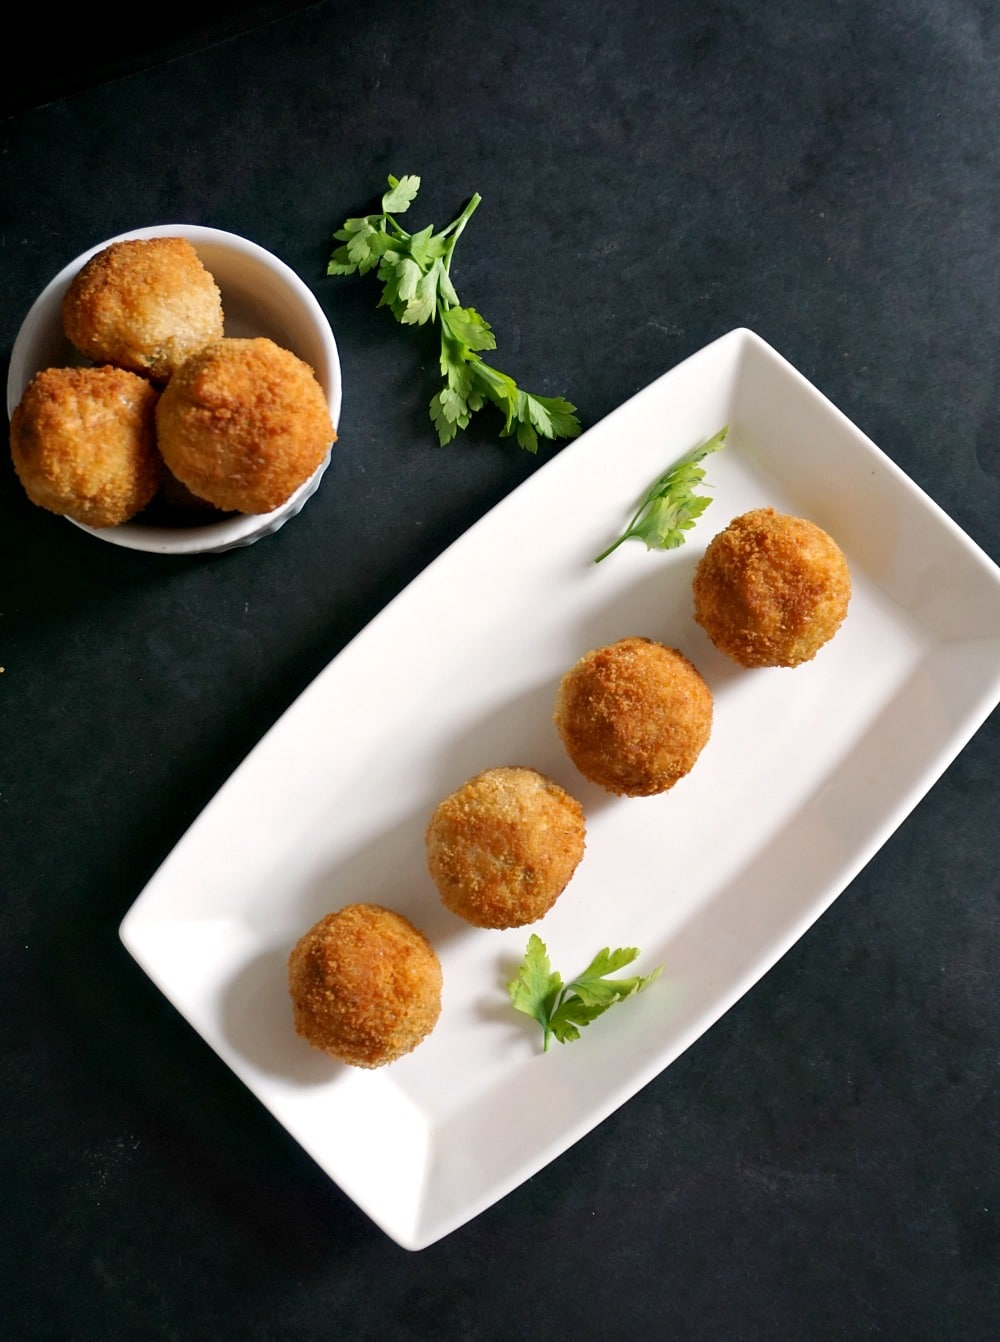 overhead view of 4 butter squash risotto balls on a white serving plate with a white bowl of risotto balls next to it and a sprig of parsley on a black background